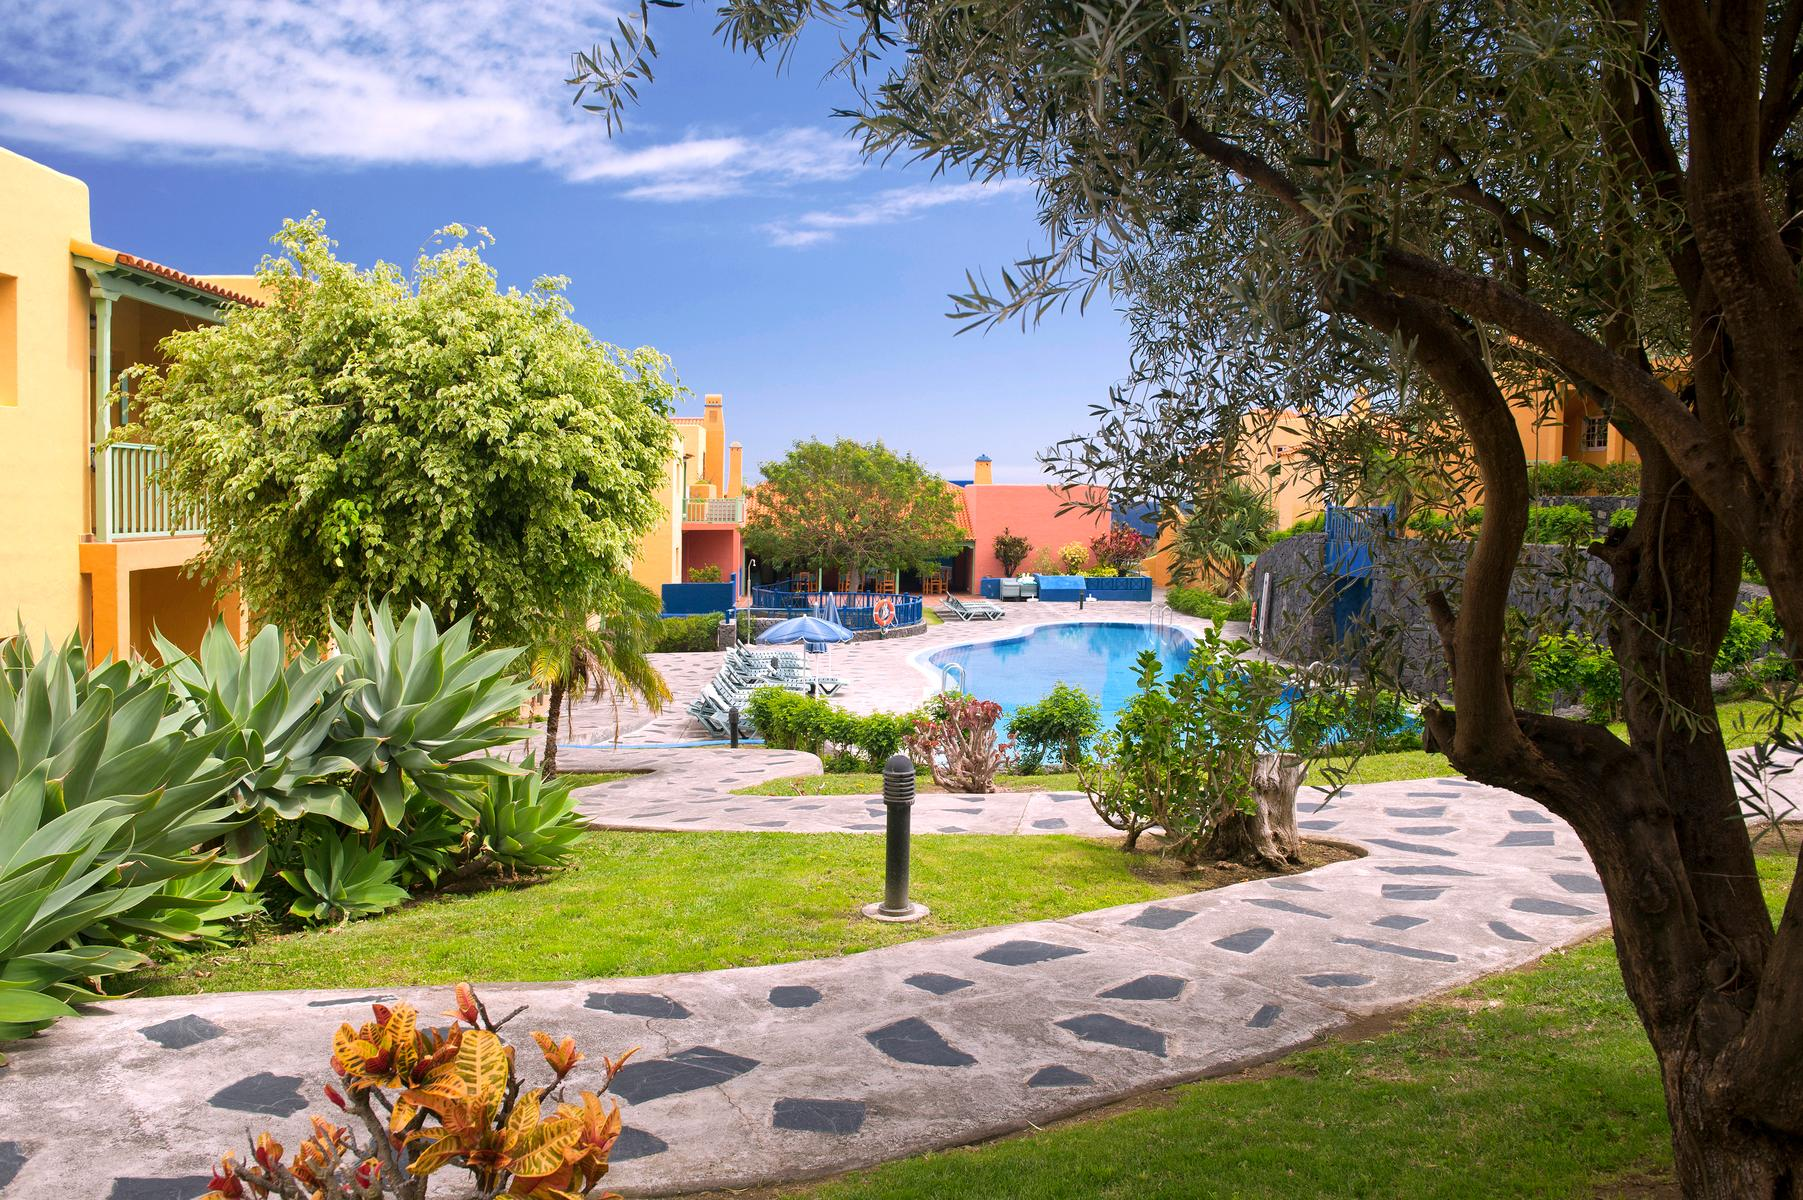 La Caleta Apartments in Los Cancajos, La Palma, Canary Islands